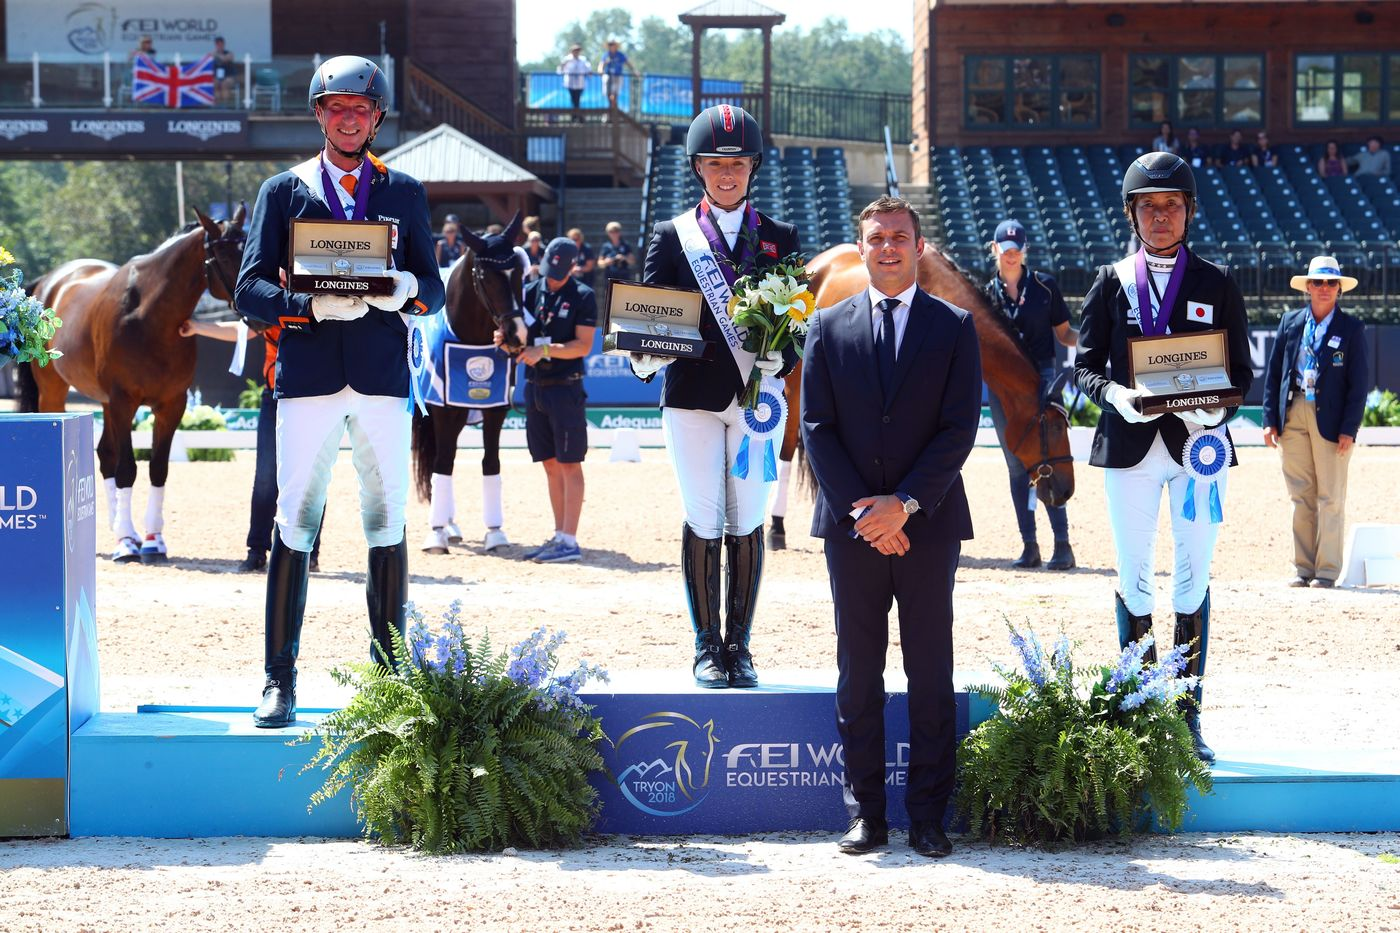 Longines Show Jumping Event: The FEI World Equestrian Games ended beautifully with Germany topping the medal table   5